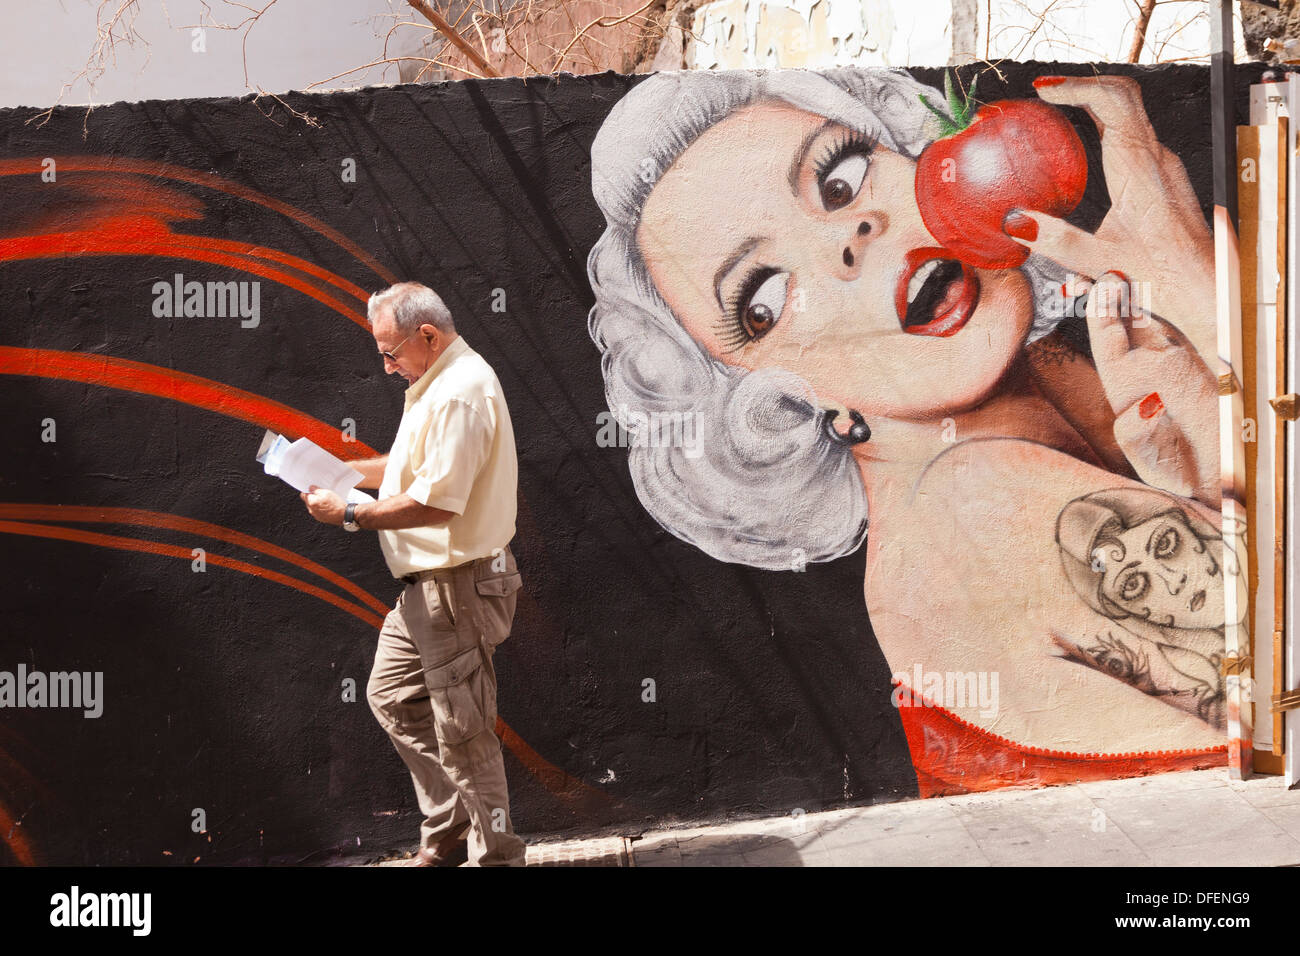 graffiti-with-marilyn-monroe-character-e